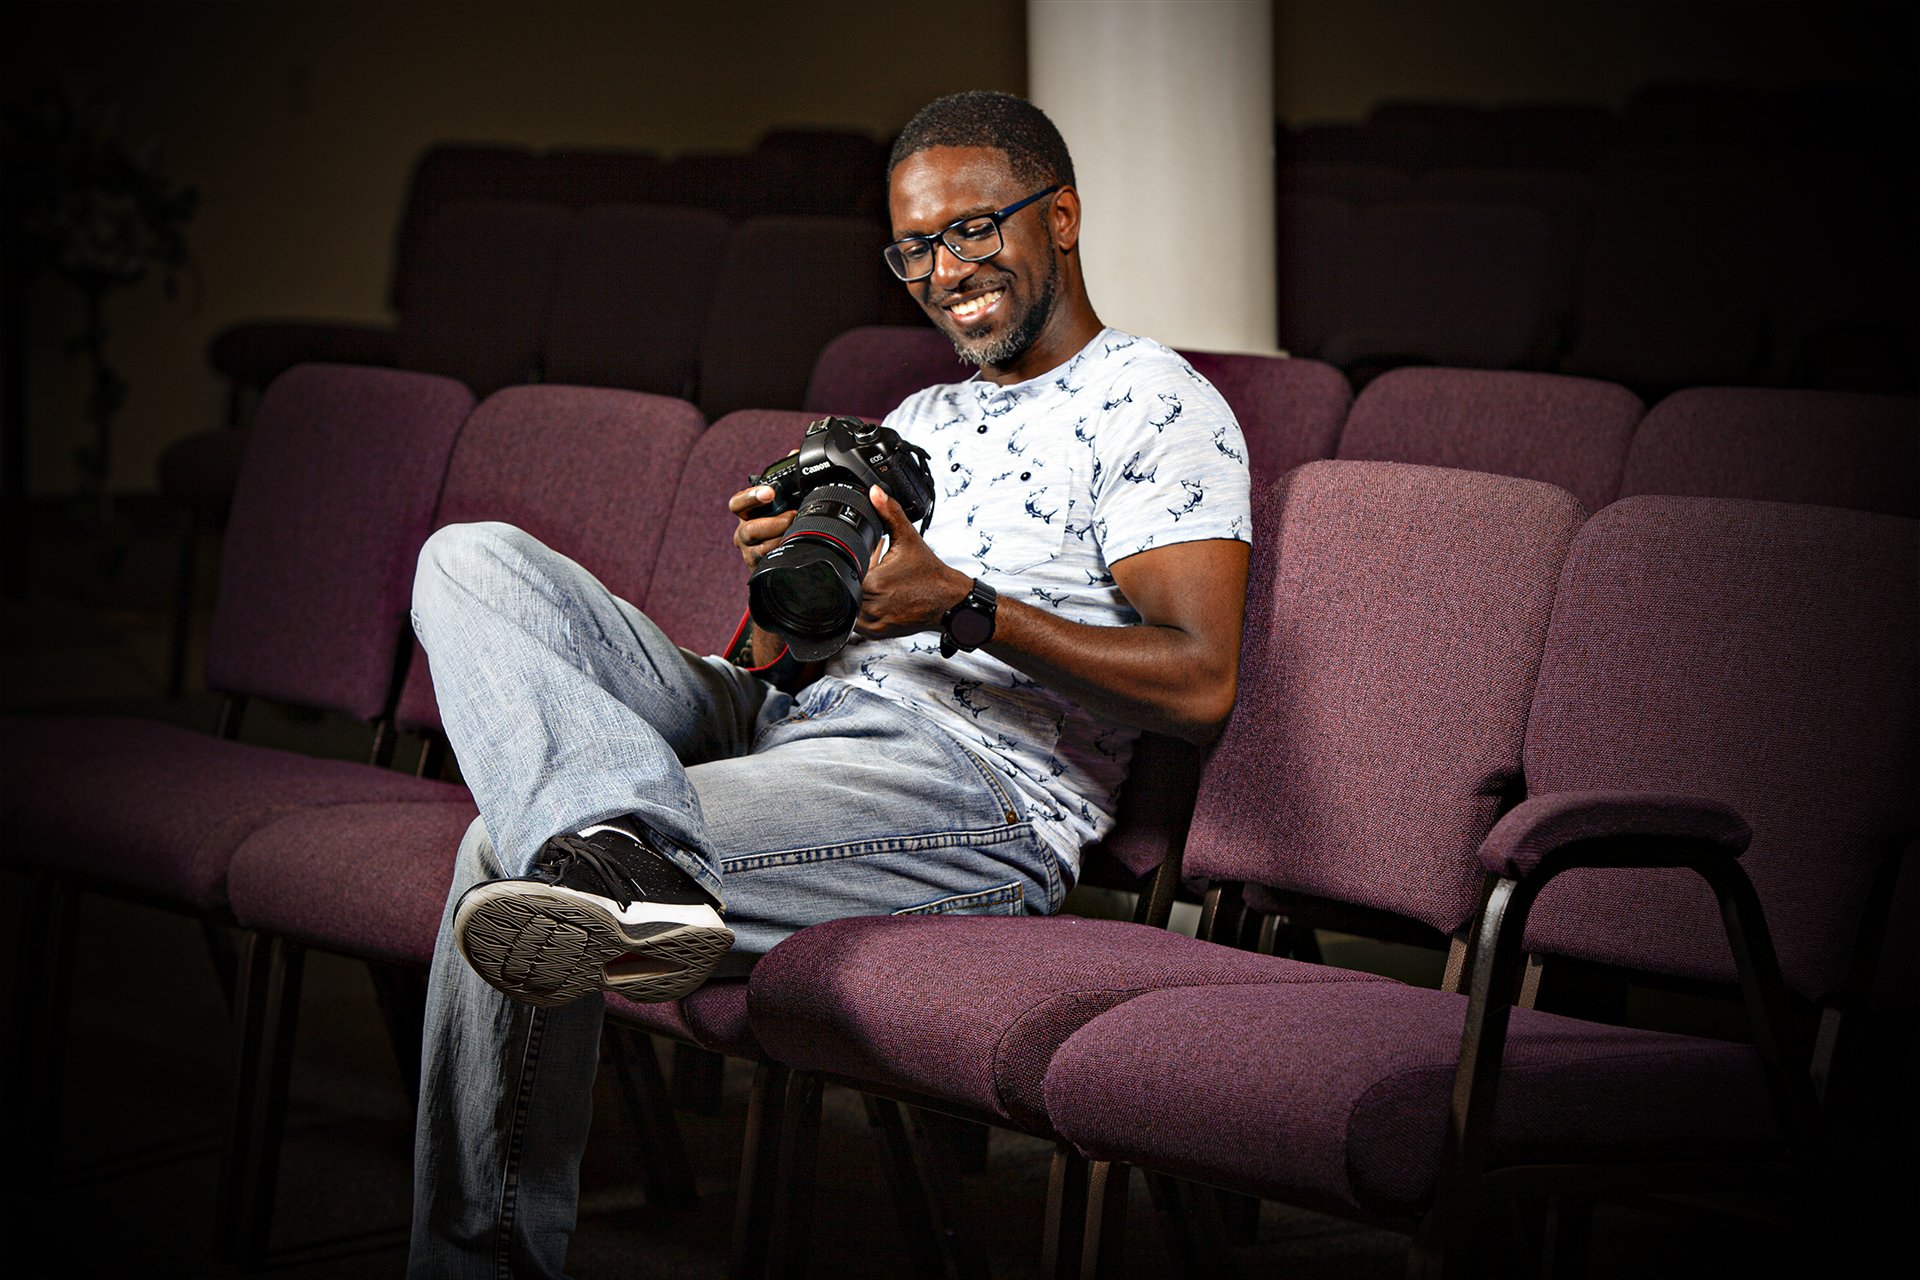 Sheldon Isaac smiling at a photo on his camera in Scarborough